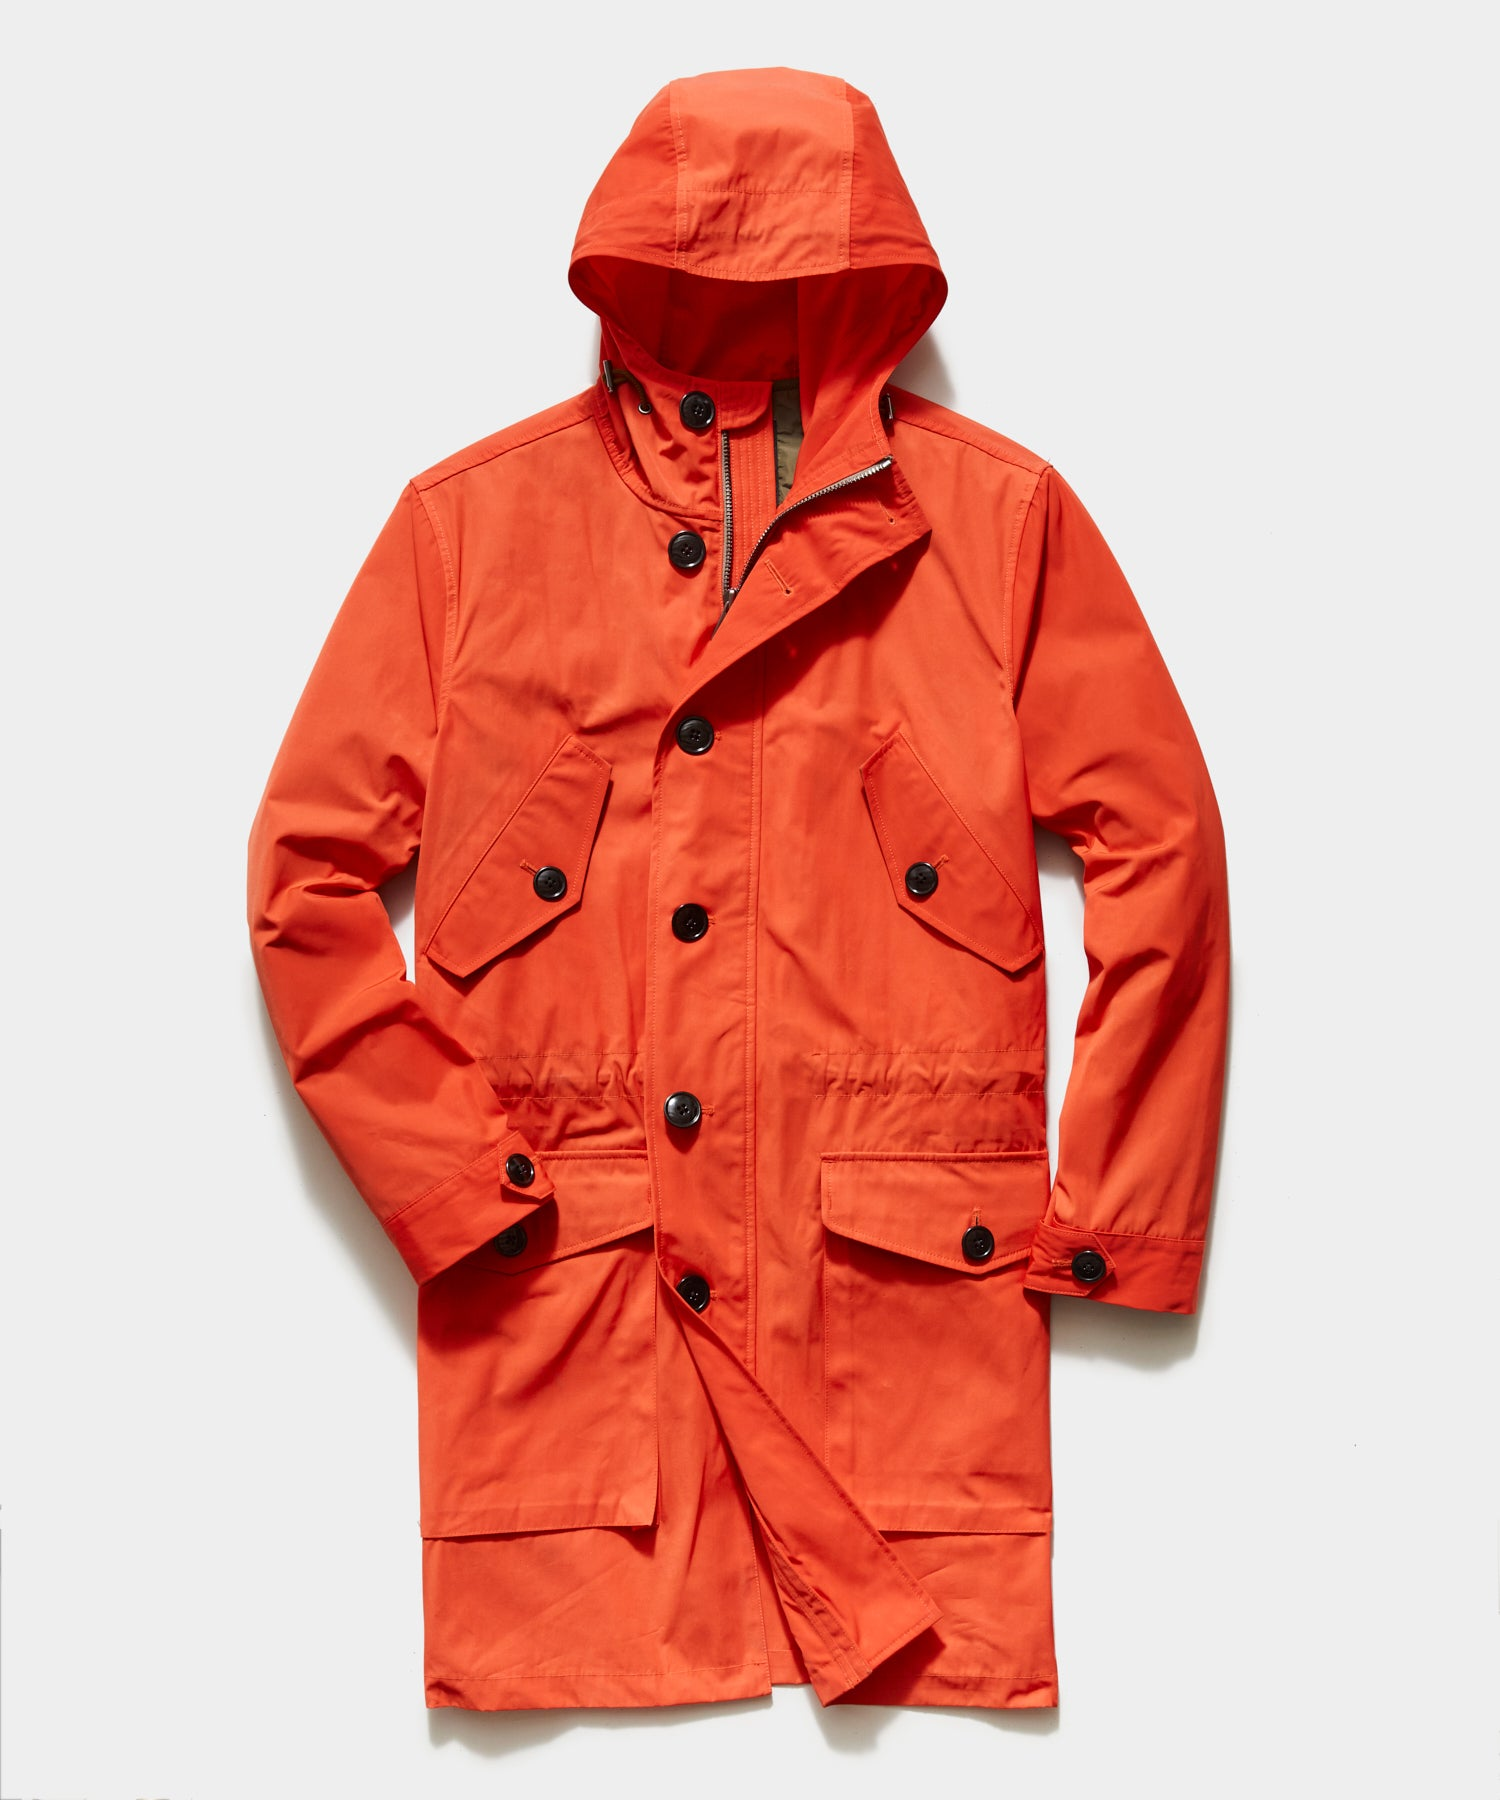 3-1 Parka in Orange